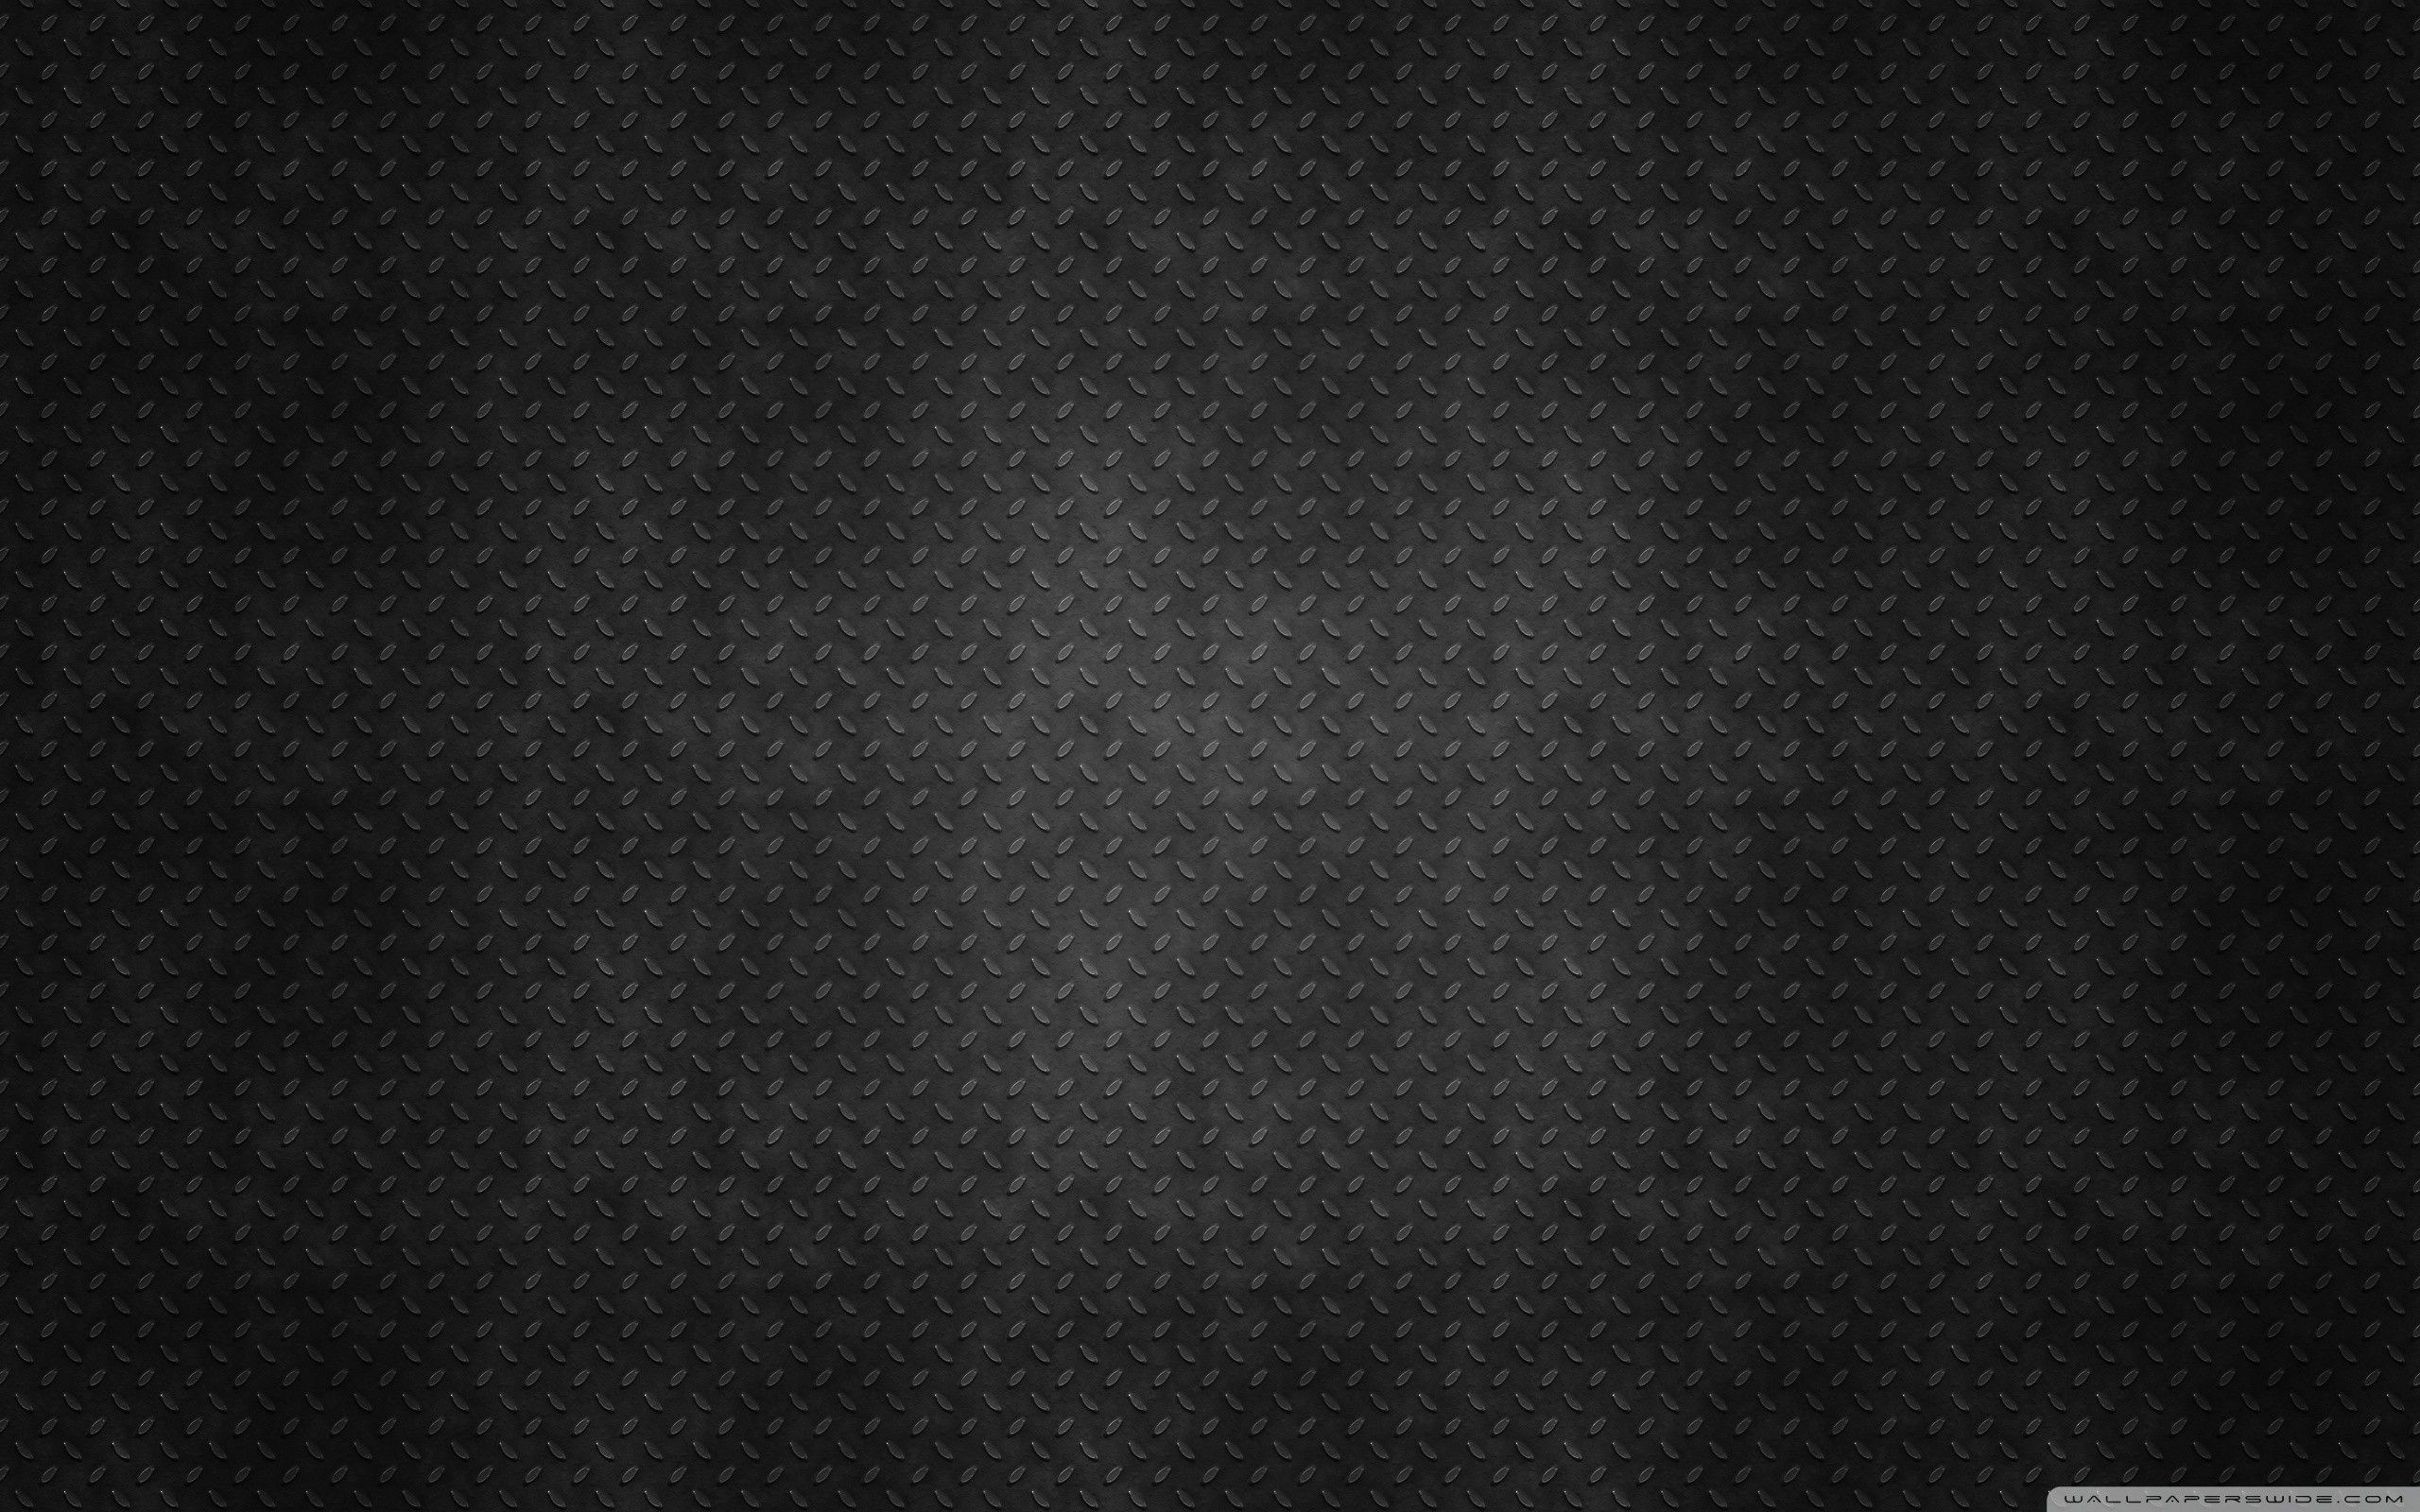 Metal Hd Wallpaper 81 Images With Images Black Textured